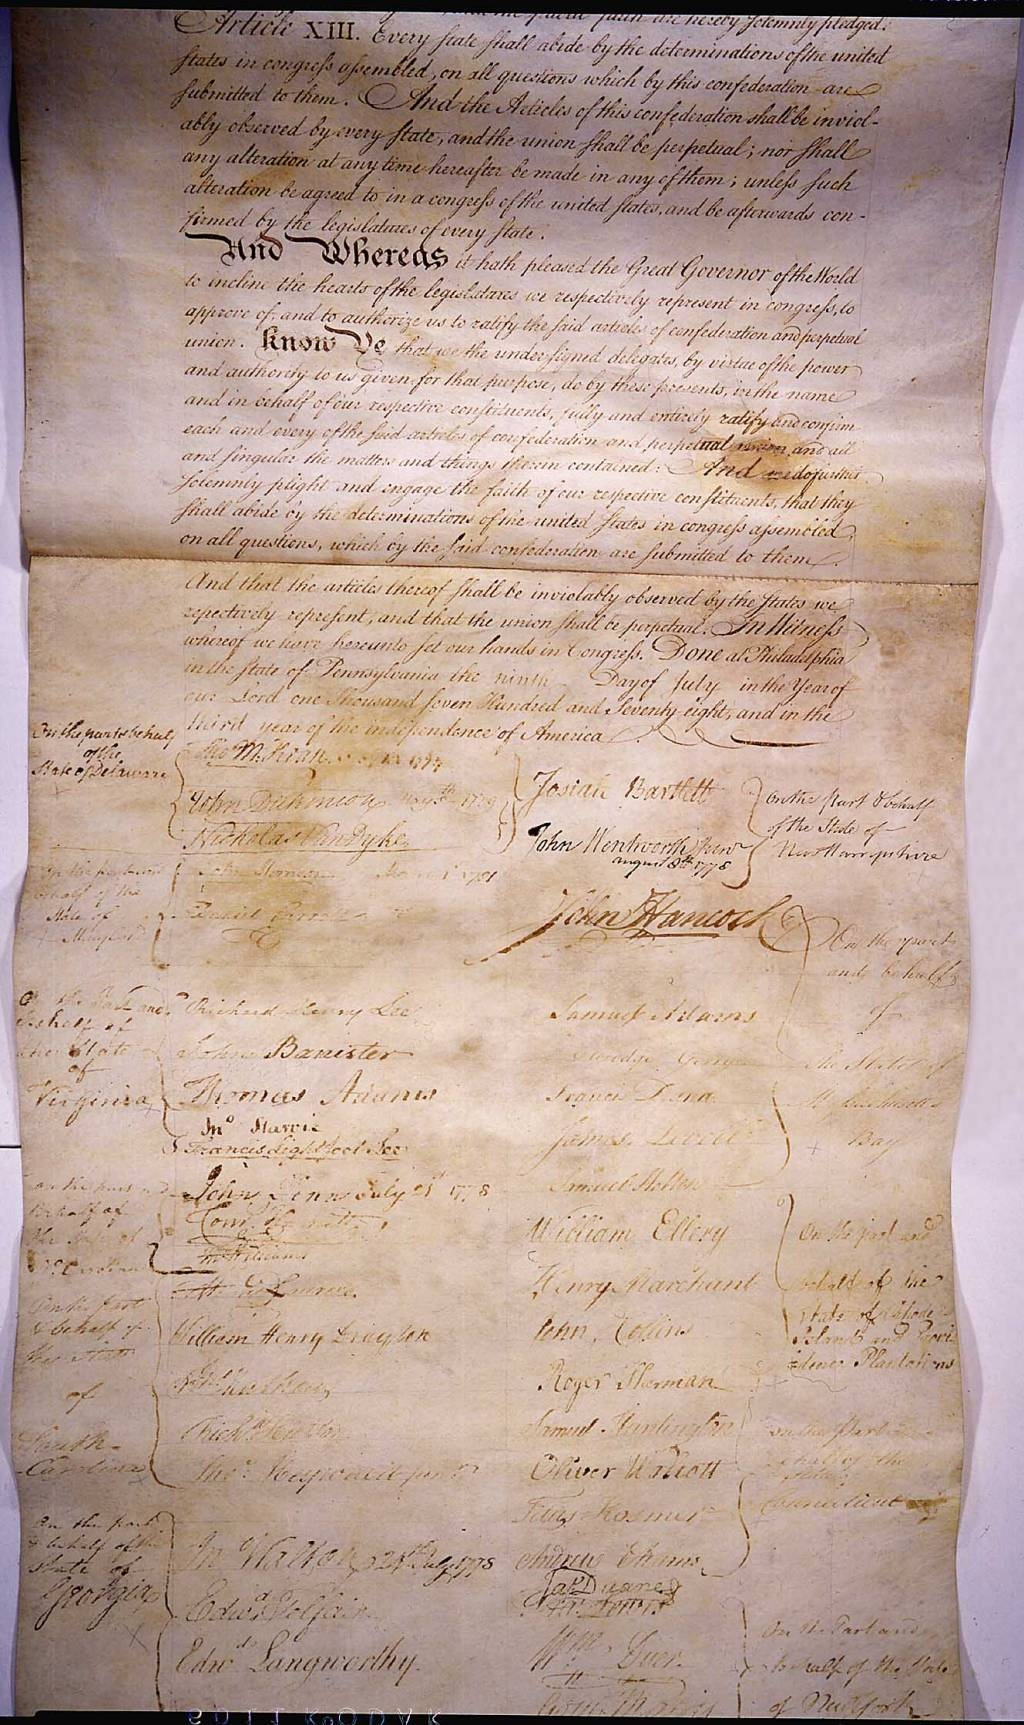 shay s rebellion this essay investigates the leading up to causes the articles of conferderation ratified in 1781 this was the format for the united